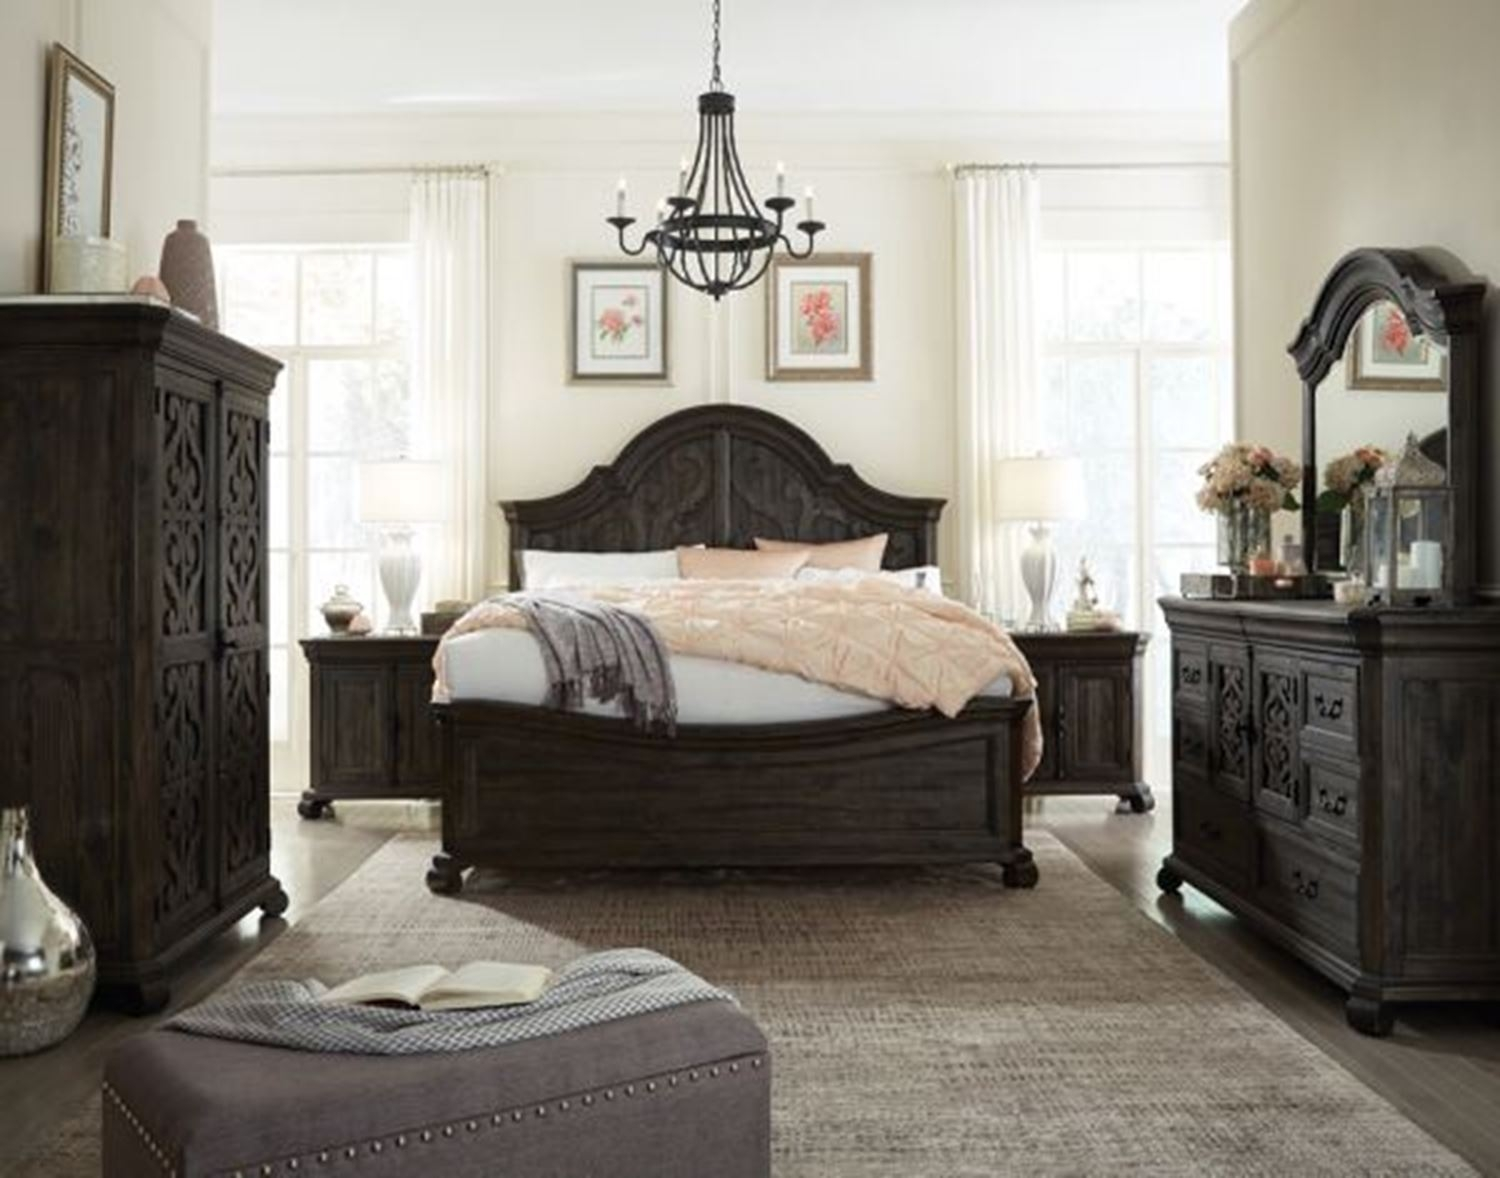 Bellamy Bedroom Set Walker Furniture Las Vegas – layjao